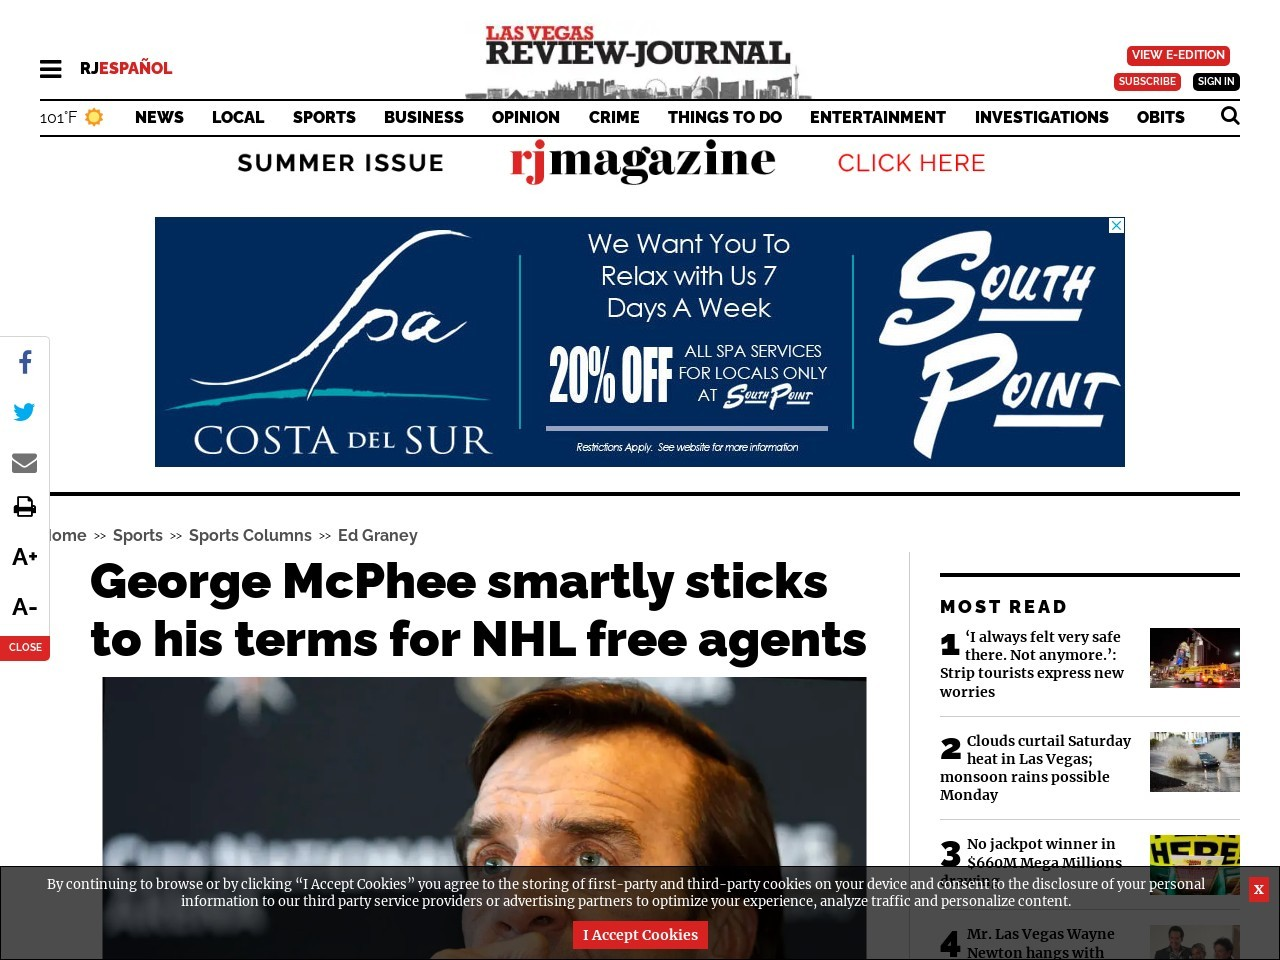 George McPhee smartly sticks to his terms for NHL free agents